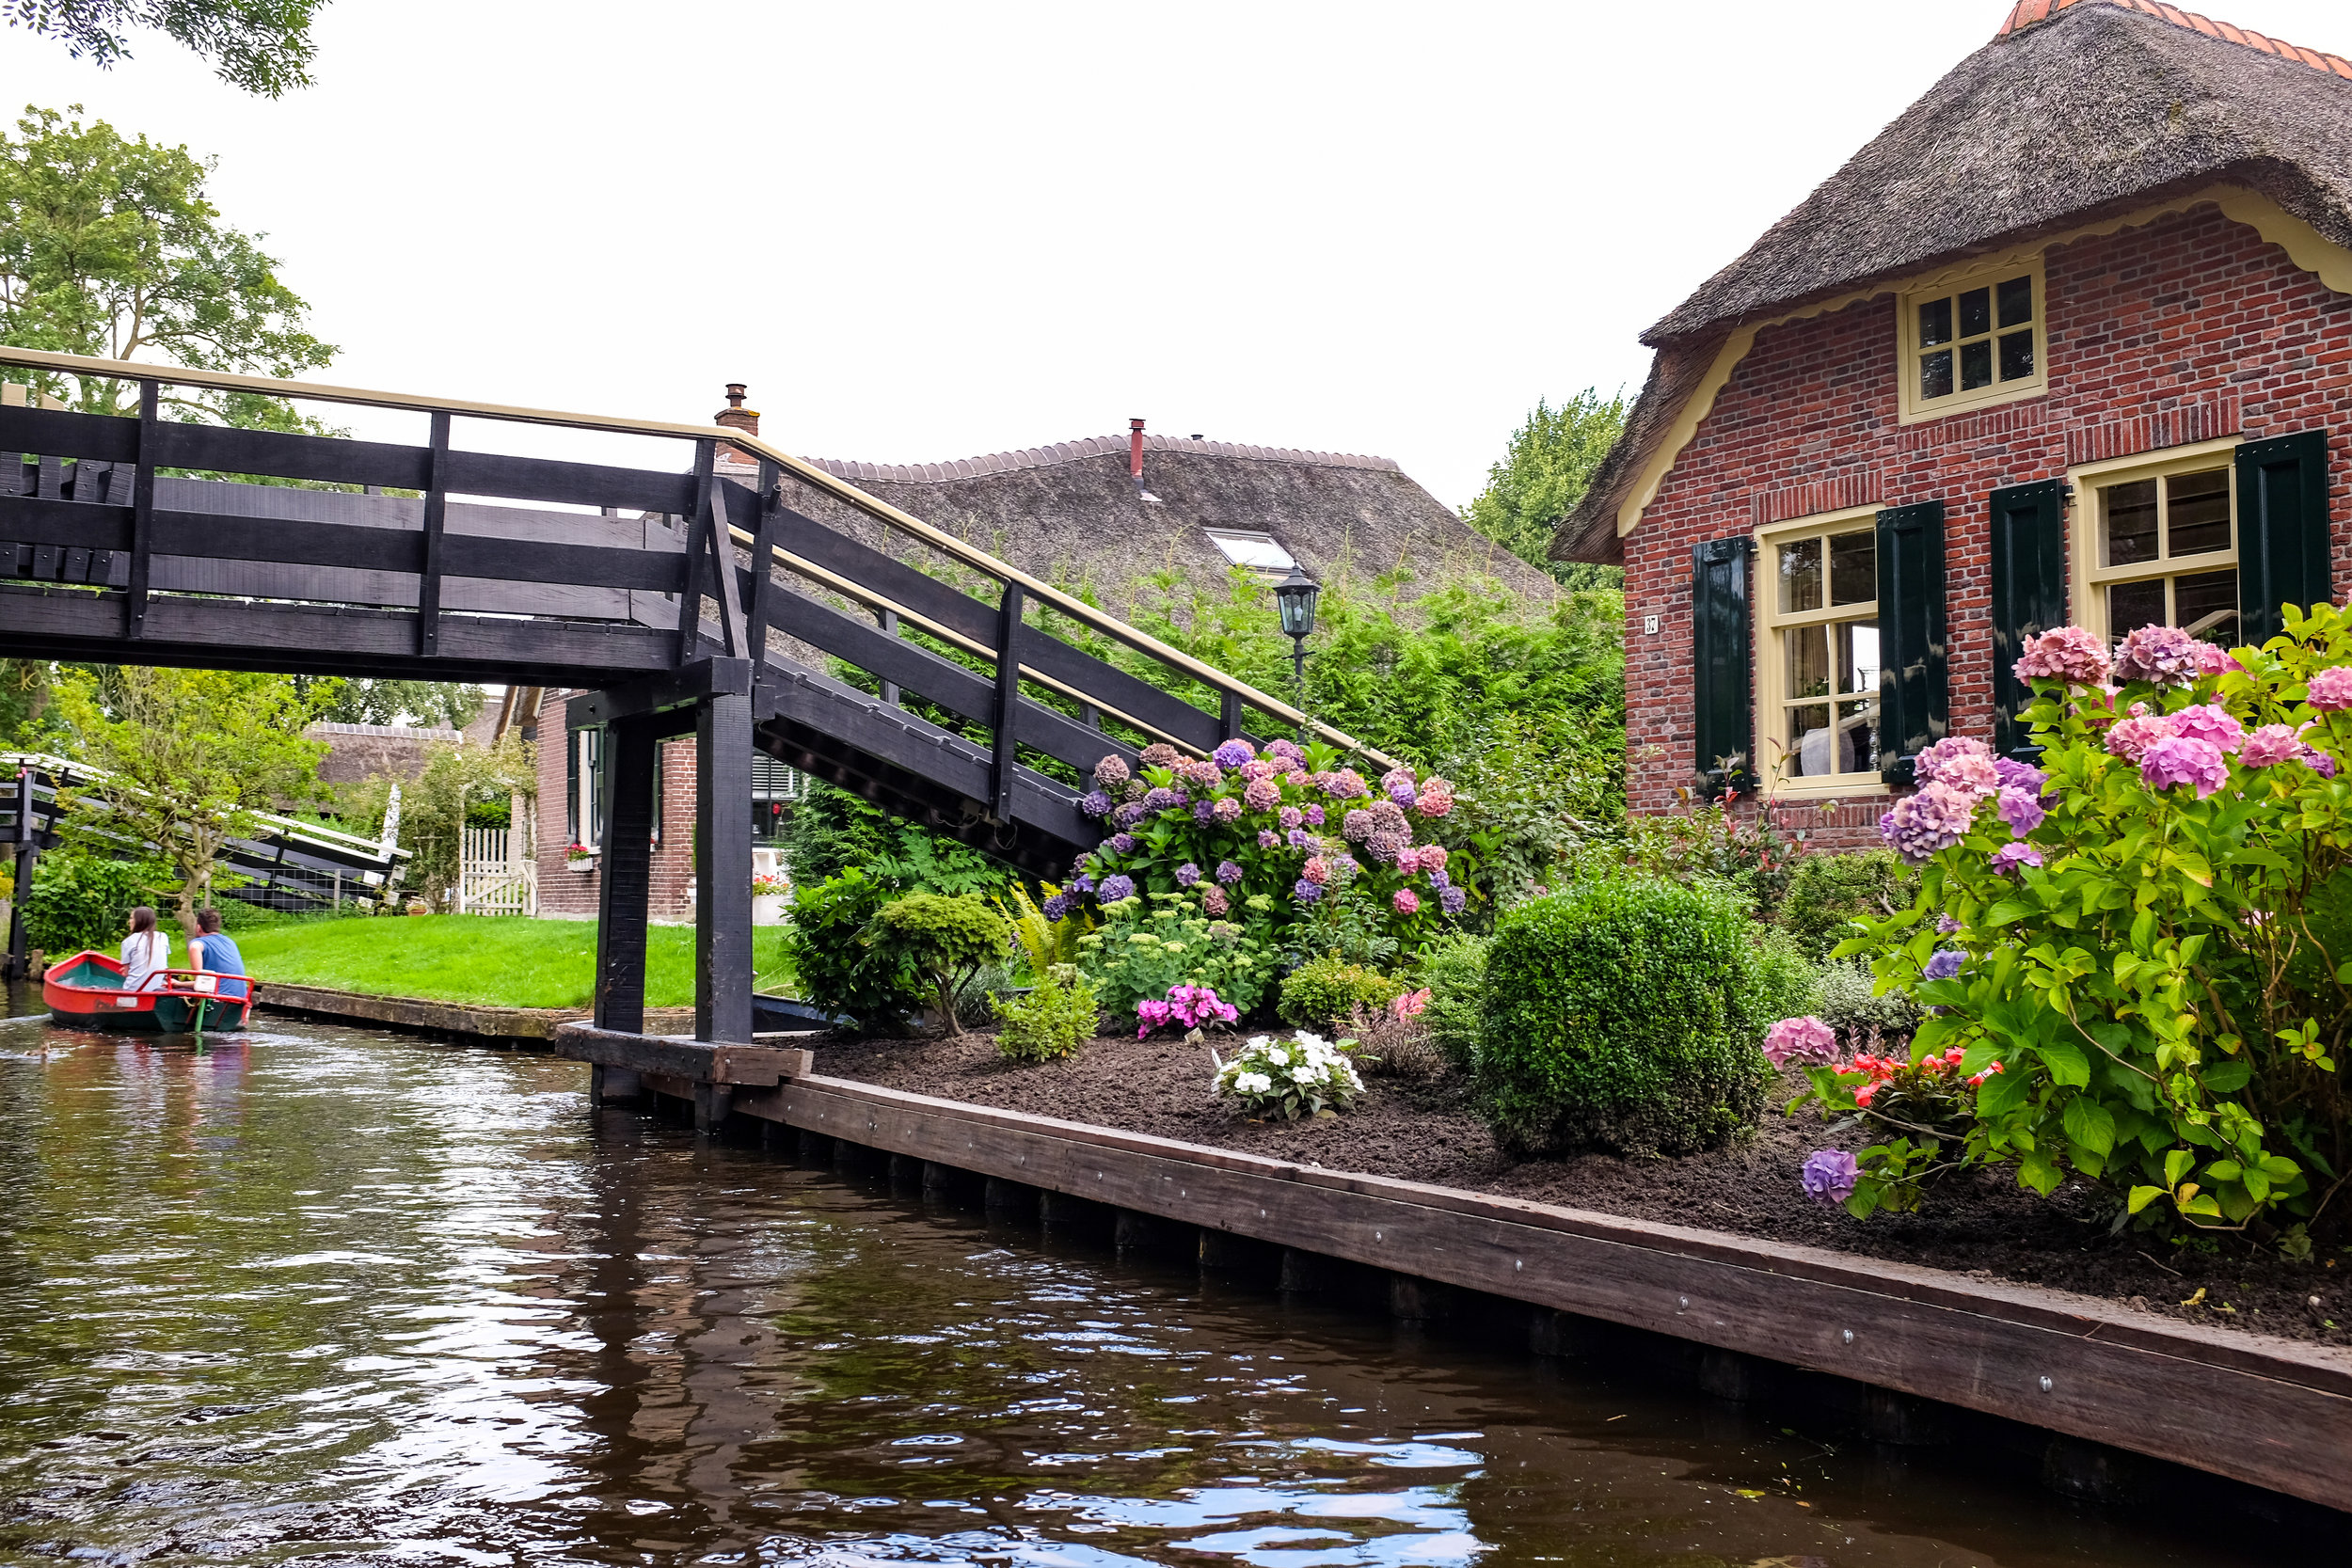 View from the boat: beautiful Dutch houses by the canal